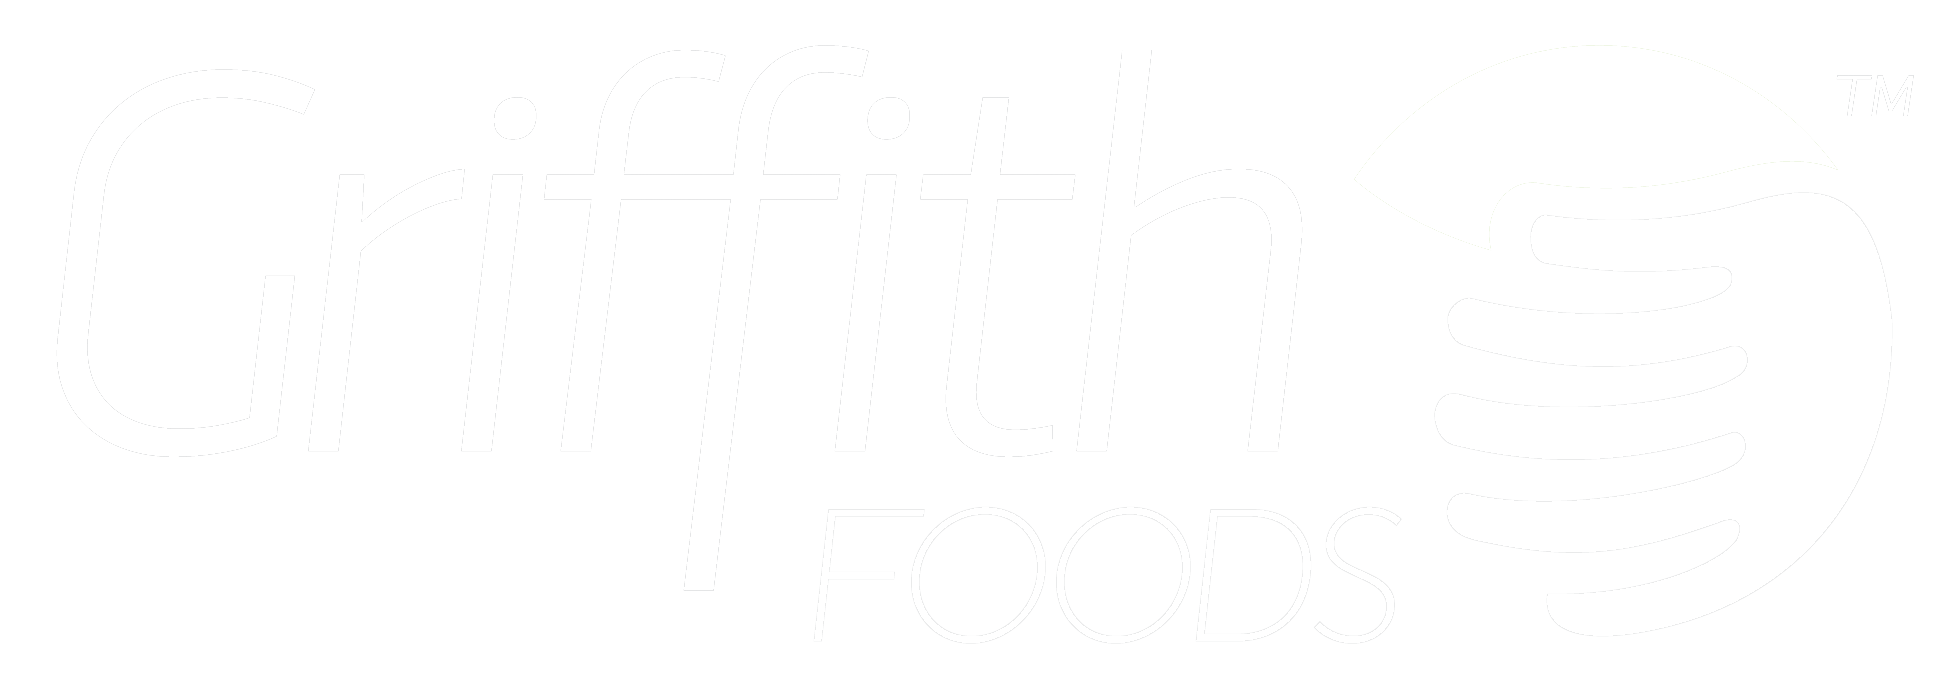 Griffith Foods logo, white